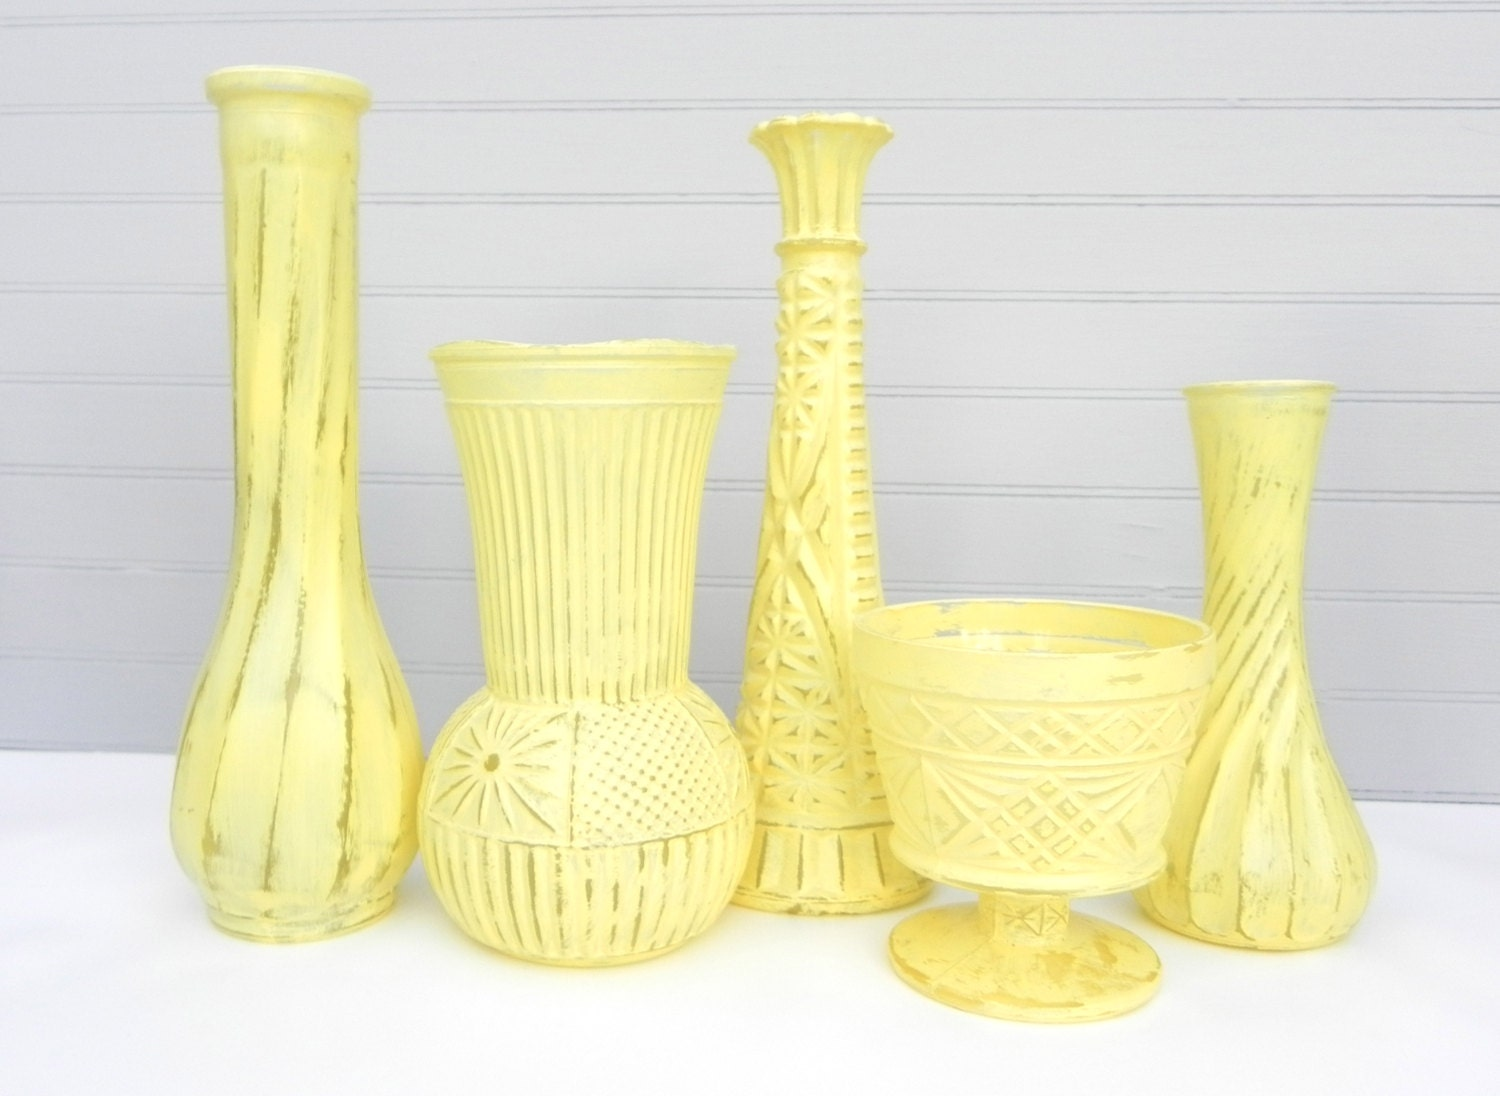 yellow shabby chic vase collection wedding vases by. Black Bedroom Furniture Sets. Home Design Ideas